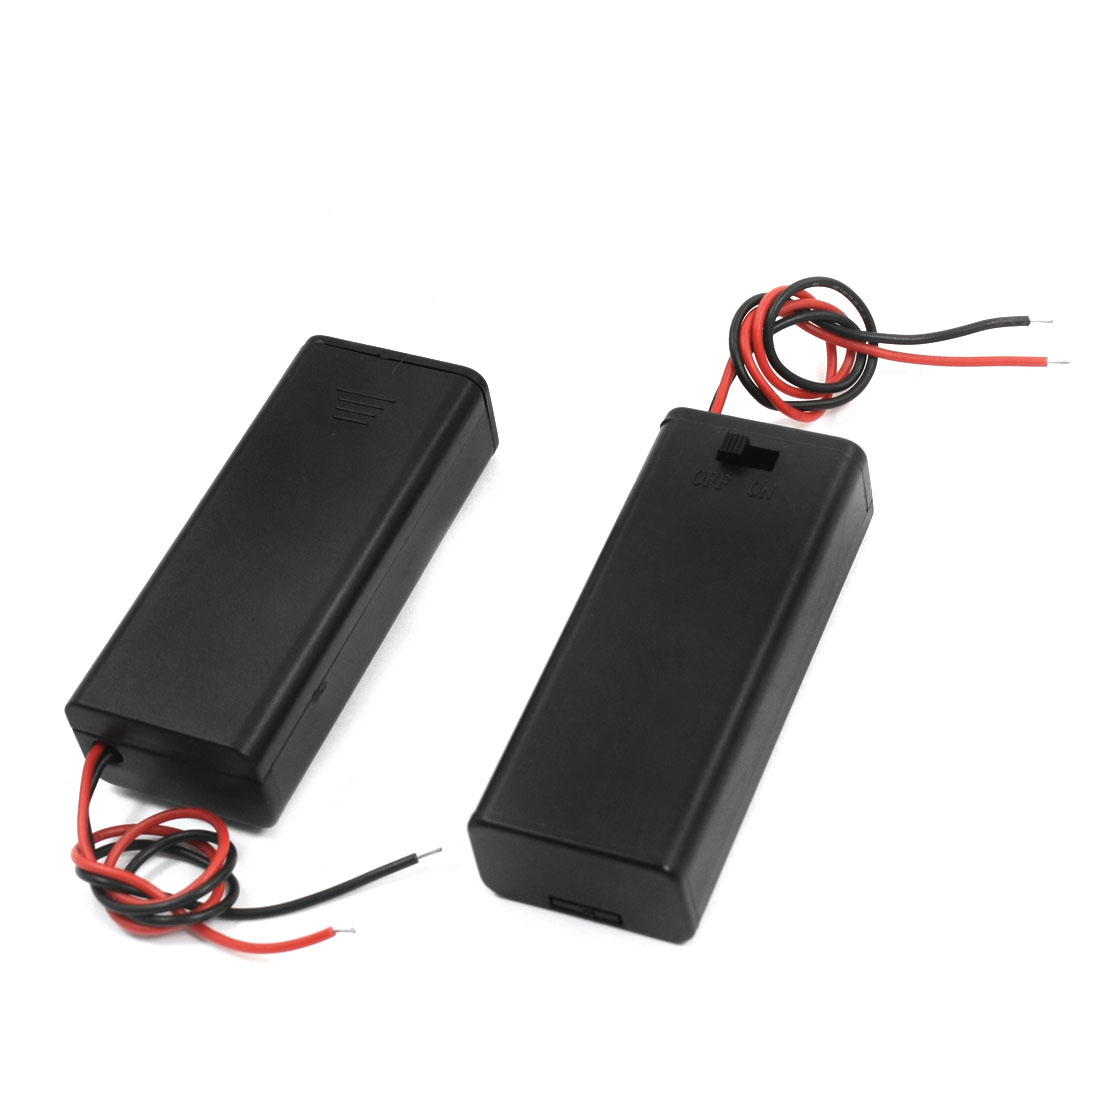 2 Pcs Two Wired Leads ON/OFF Switch Black Plastic Shell 2 x 1.5V AAA Battery Holder Case Container Box w Slide Cover